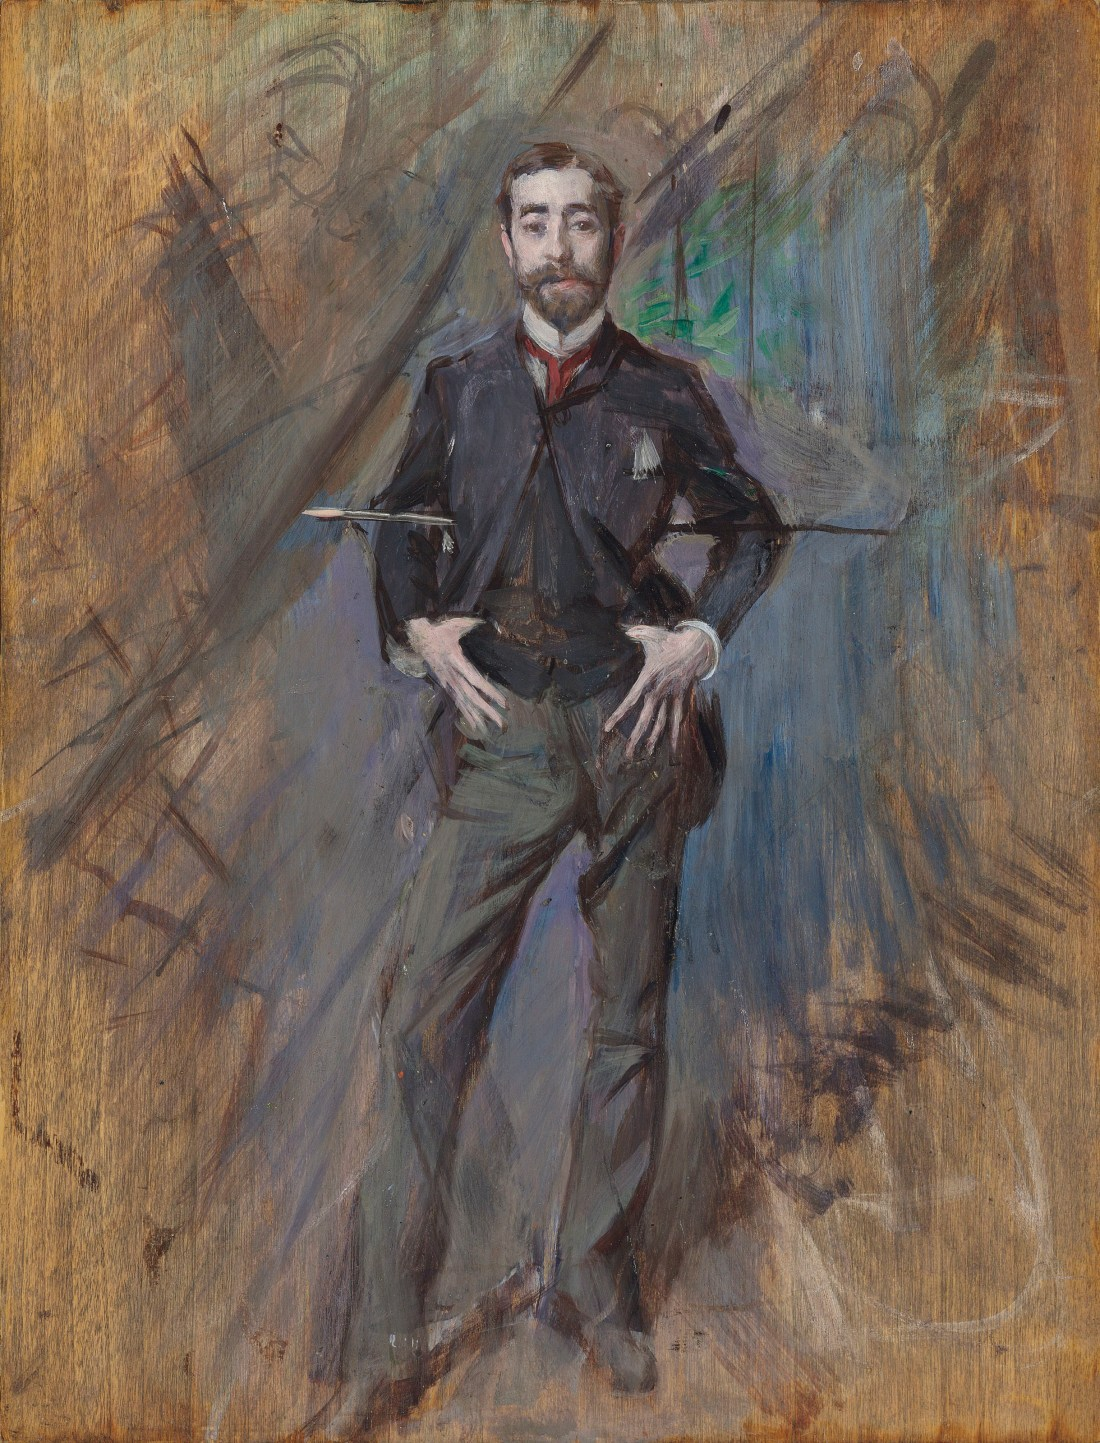 Giovanni Boldini's oil on panel portrait of John Singer Sargent shows the man in full, facing the viewer but not locking eyes with us. He has hitched his thumbs into the band of his waistcoat. He has threaded his cane behind his back, resting the ends on his elbows. While the image of Sargent is finished, the portrait and especially its background have a sketchy feel, with dozens of visible brush strokes.